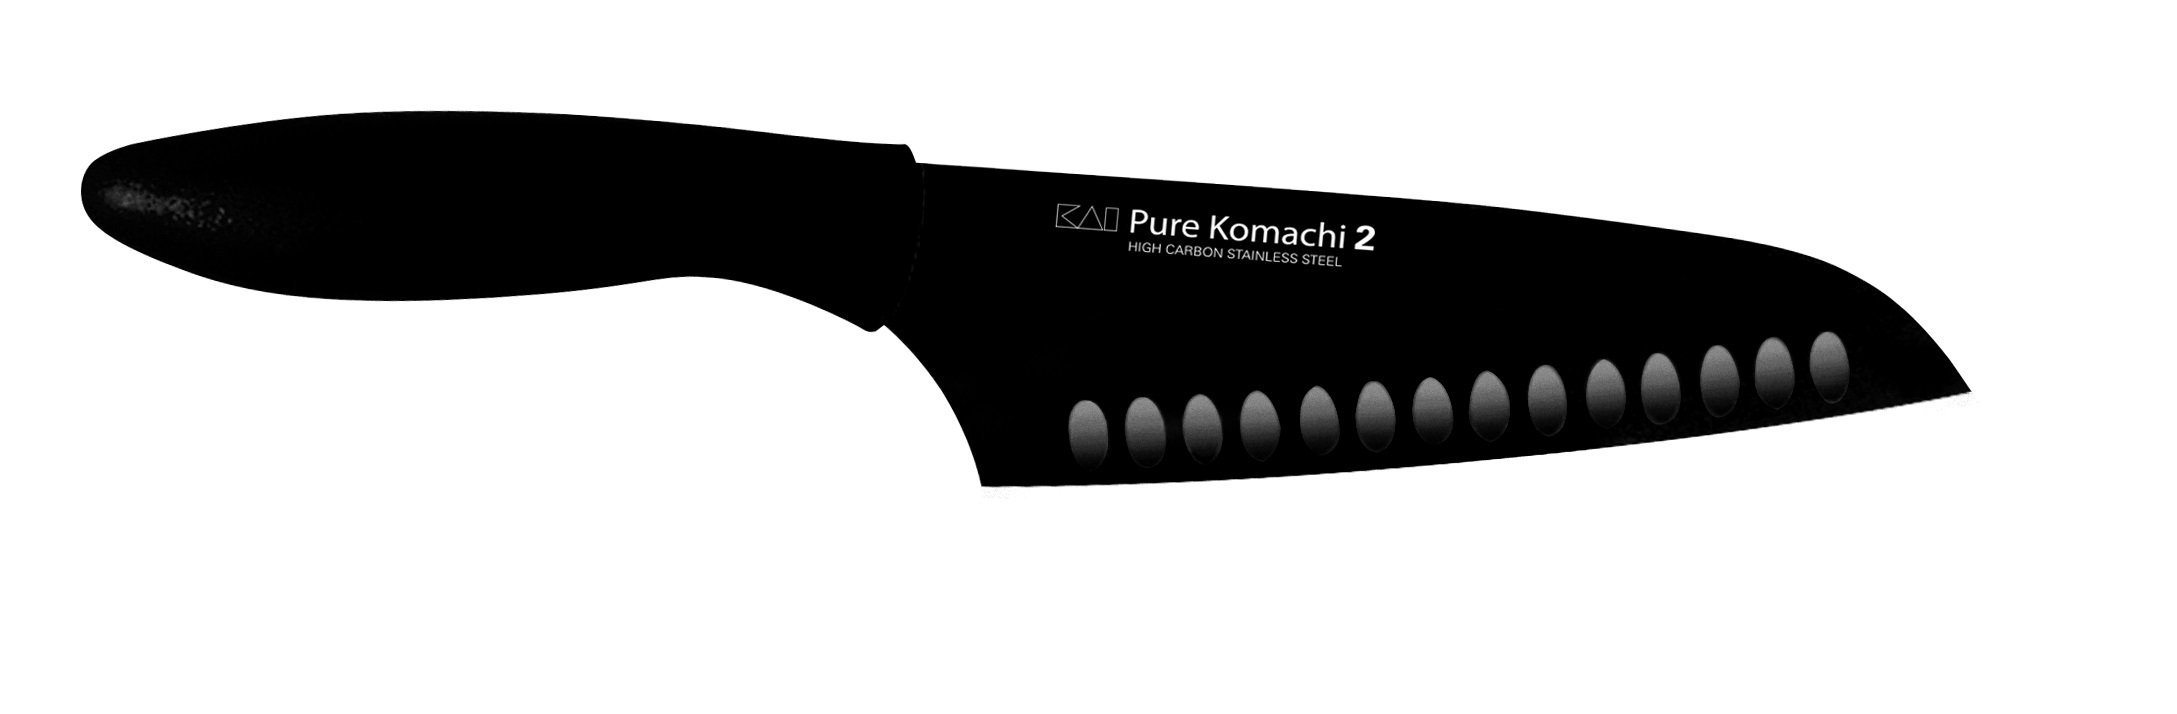 Kershaw Pure Komachi 2 Hollow Ground Santoku Knife, 6.5-Inch, Black